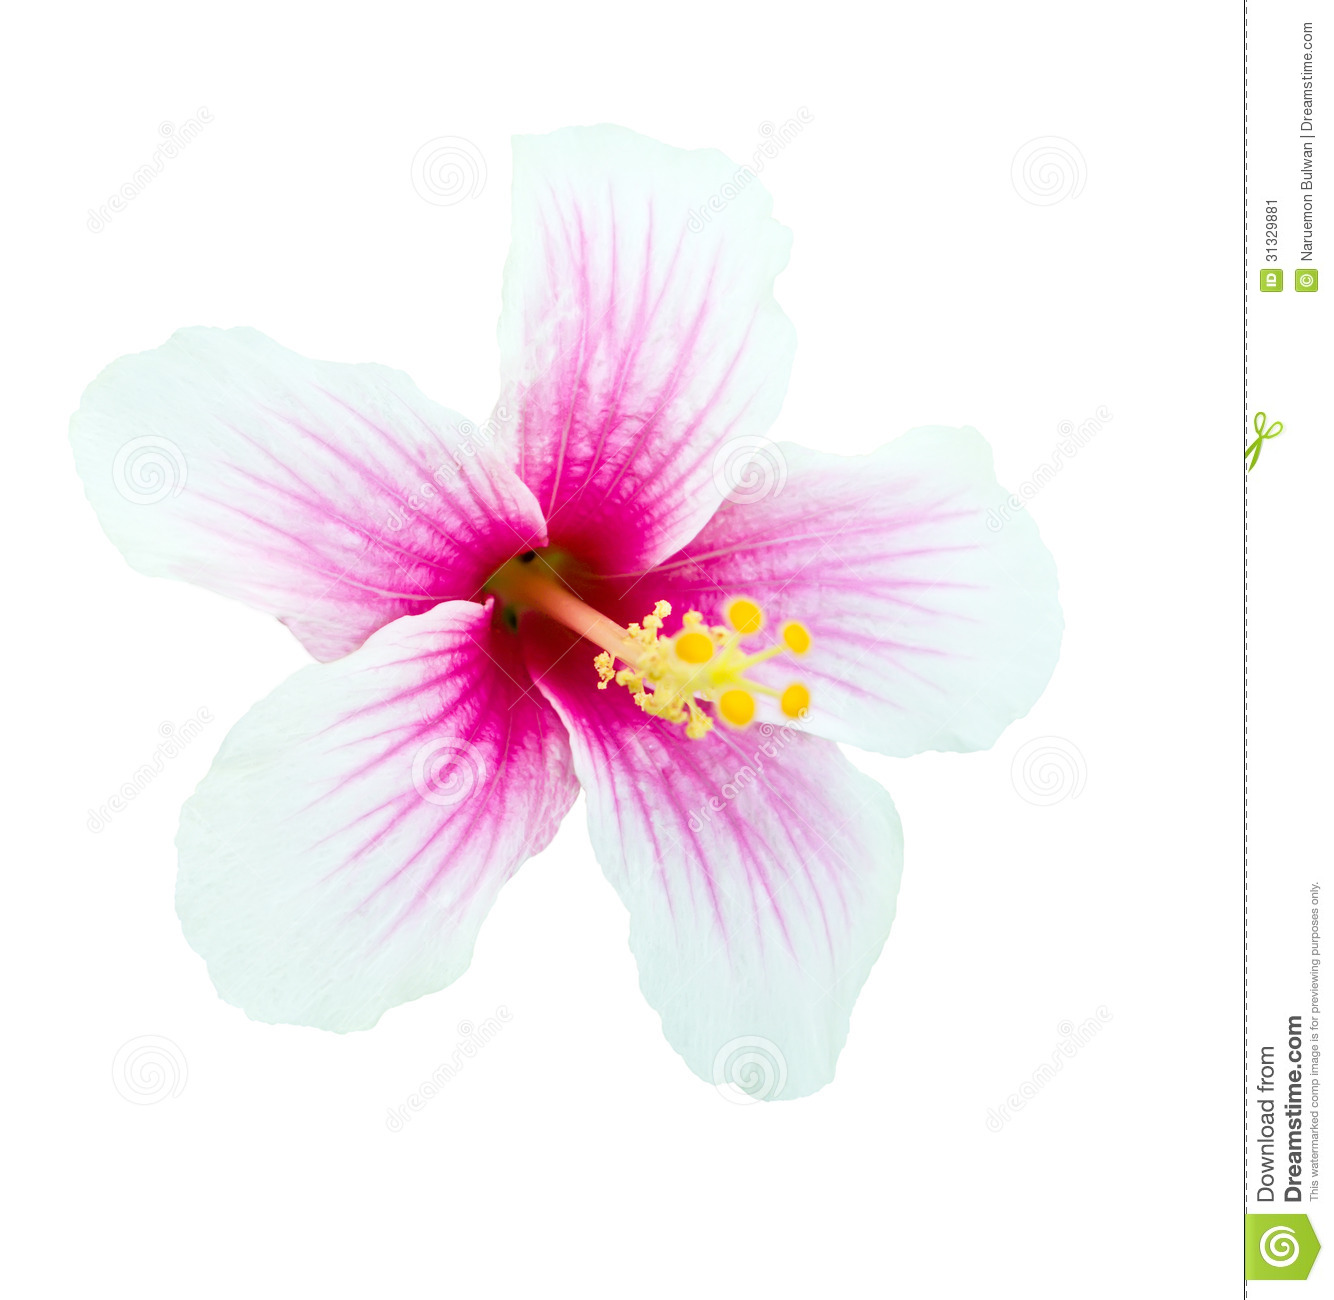 Pink and white hibiscus flower isolated stock image image of pink and white hibiscus flower isolated mightylinksfo Choice Image